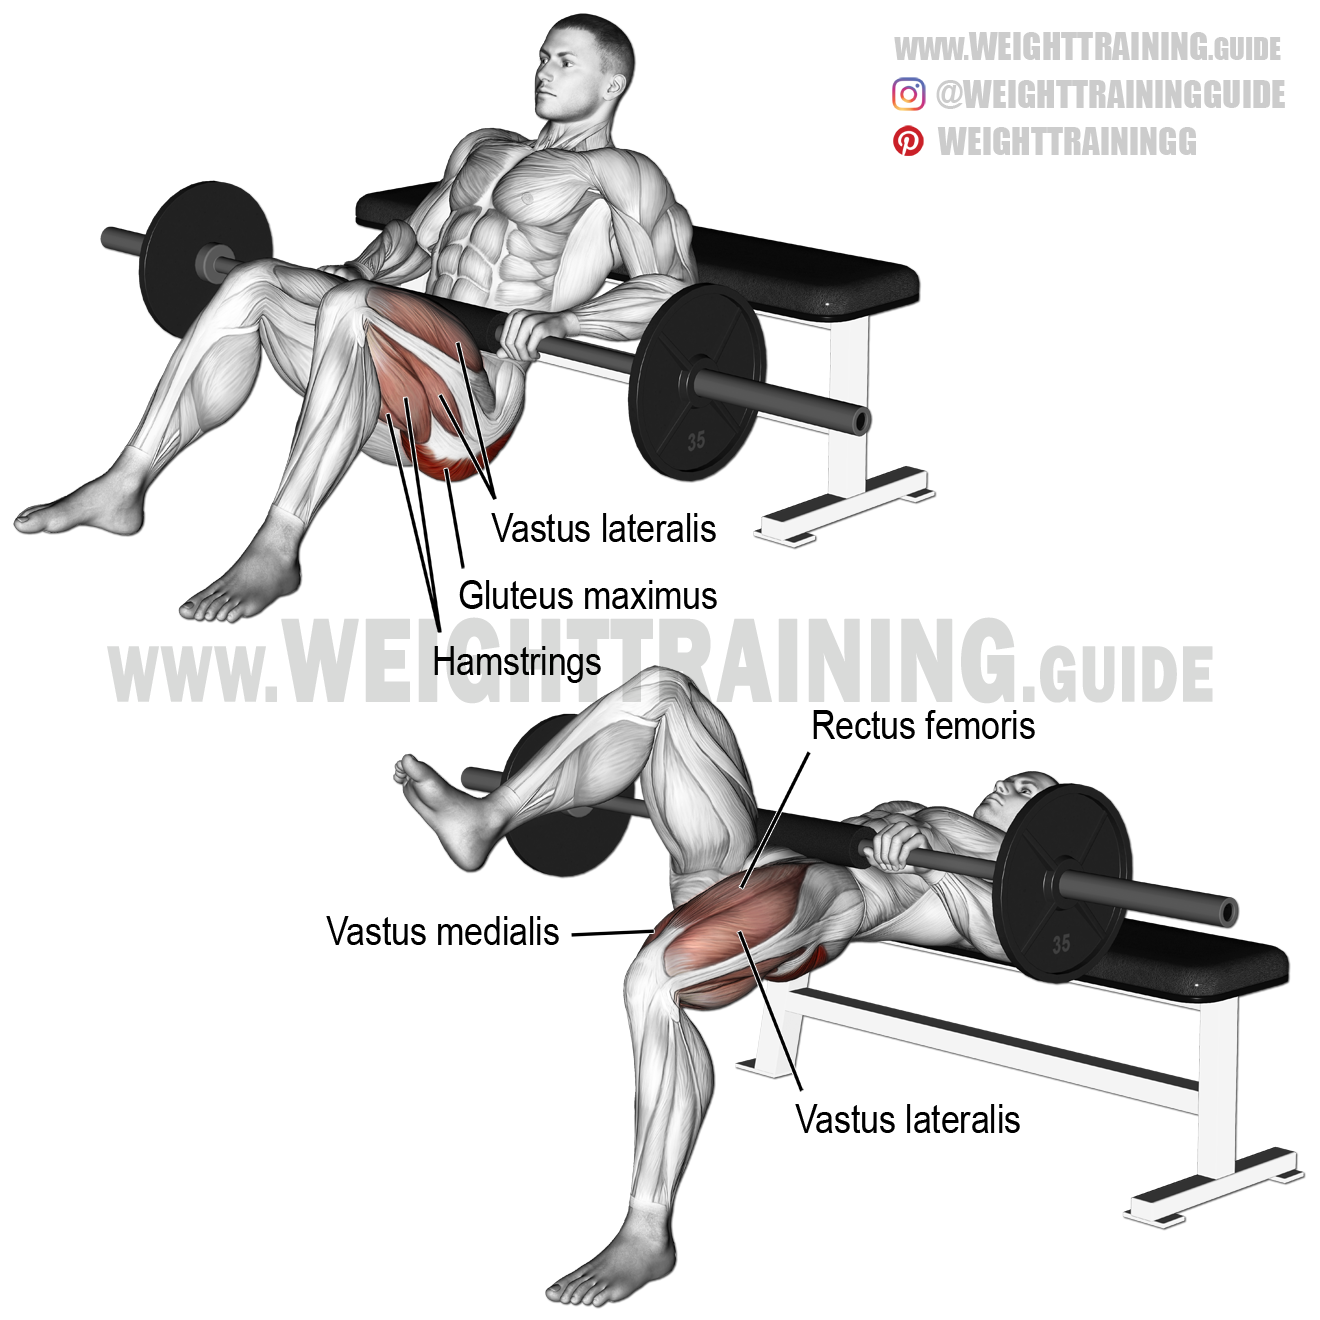 Barbell One Leg Hip Thrust Exercise Instructions And Video